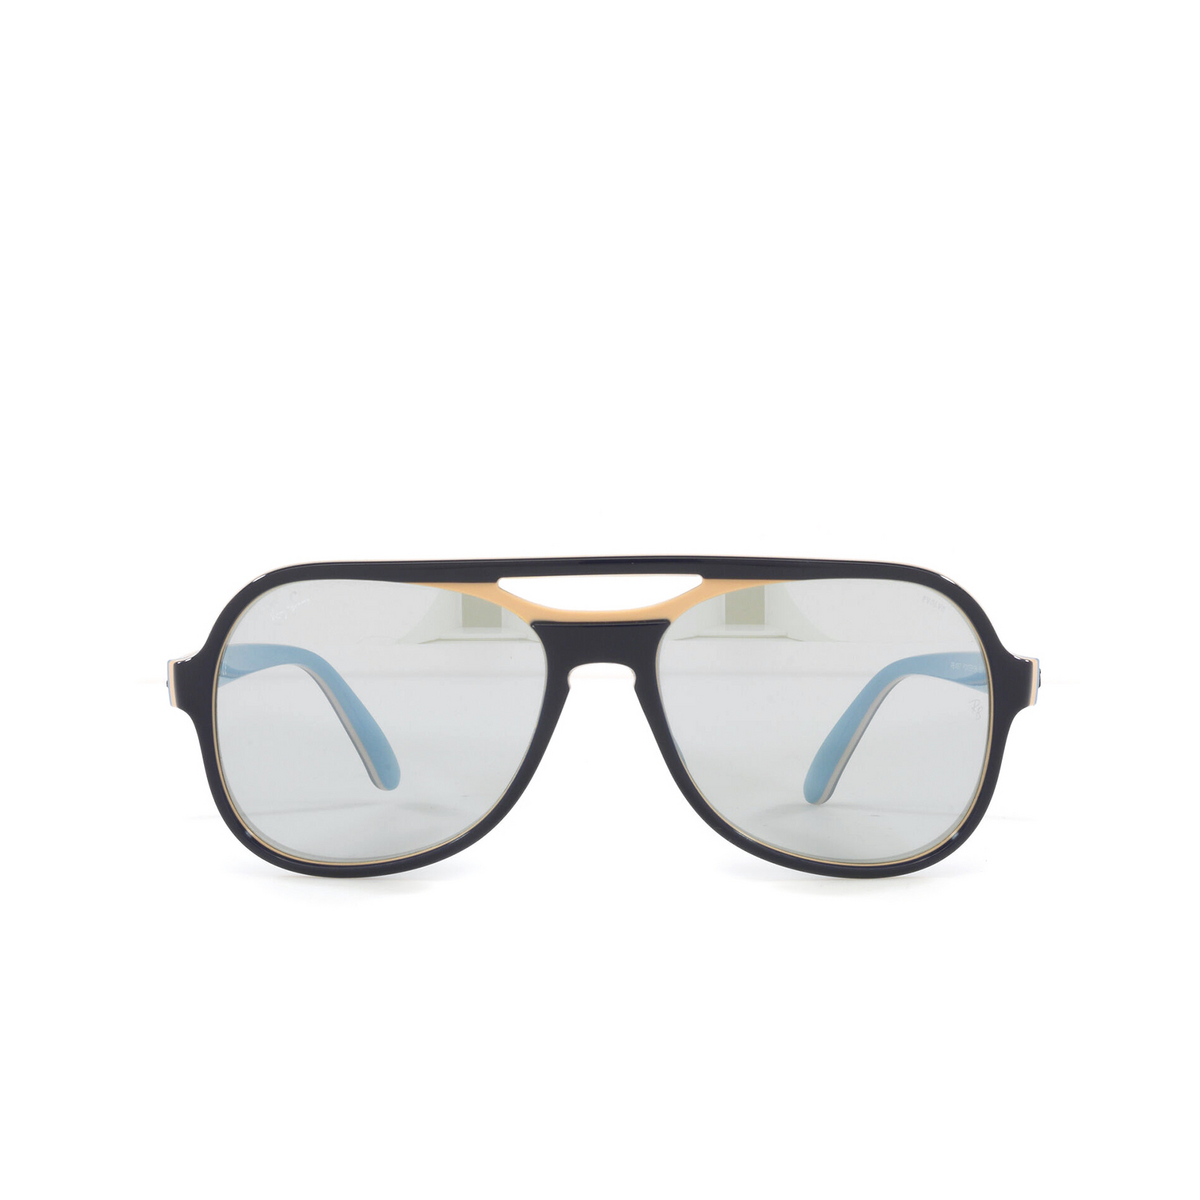 Ray-Ban® Aviator Sunglasses: Powderhorn RB4357 color Blue Creamy Light Blue 6546W3 - front view.